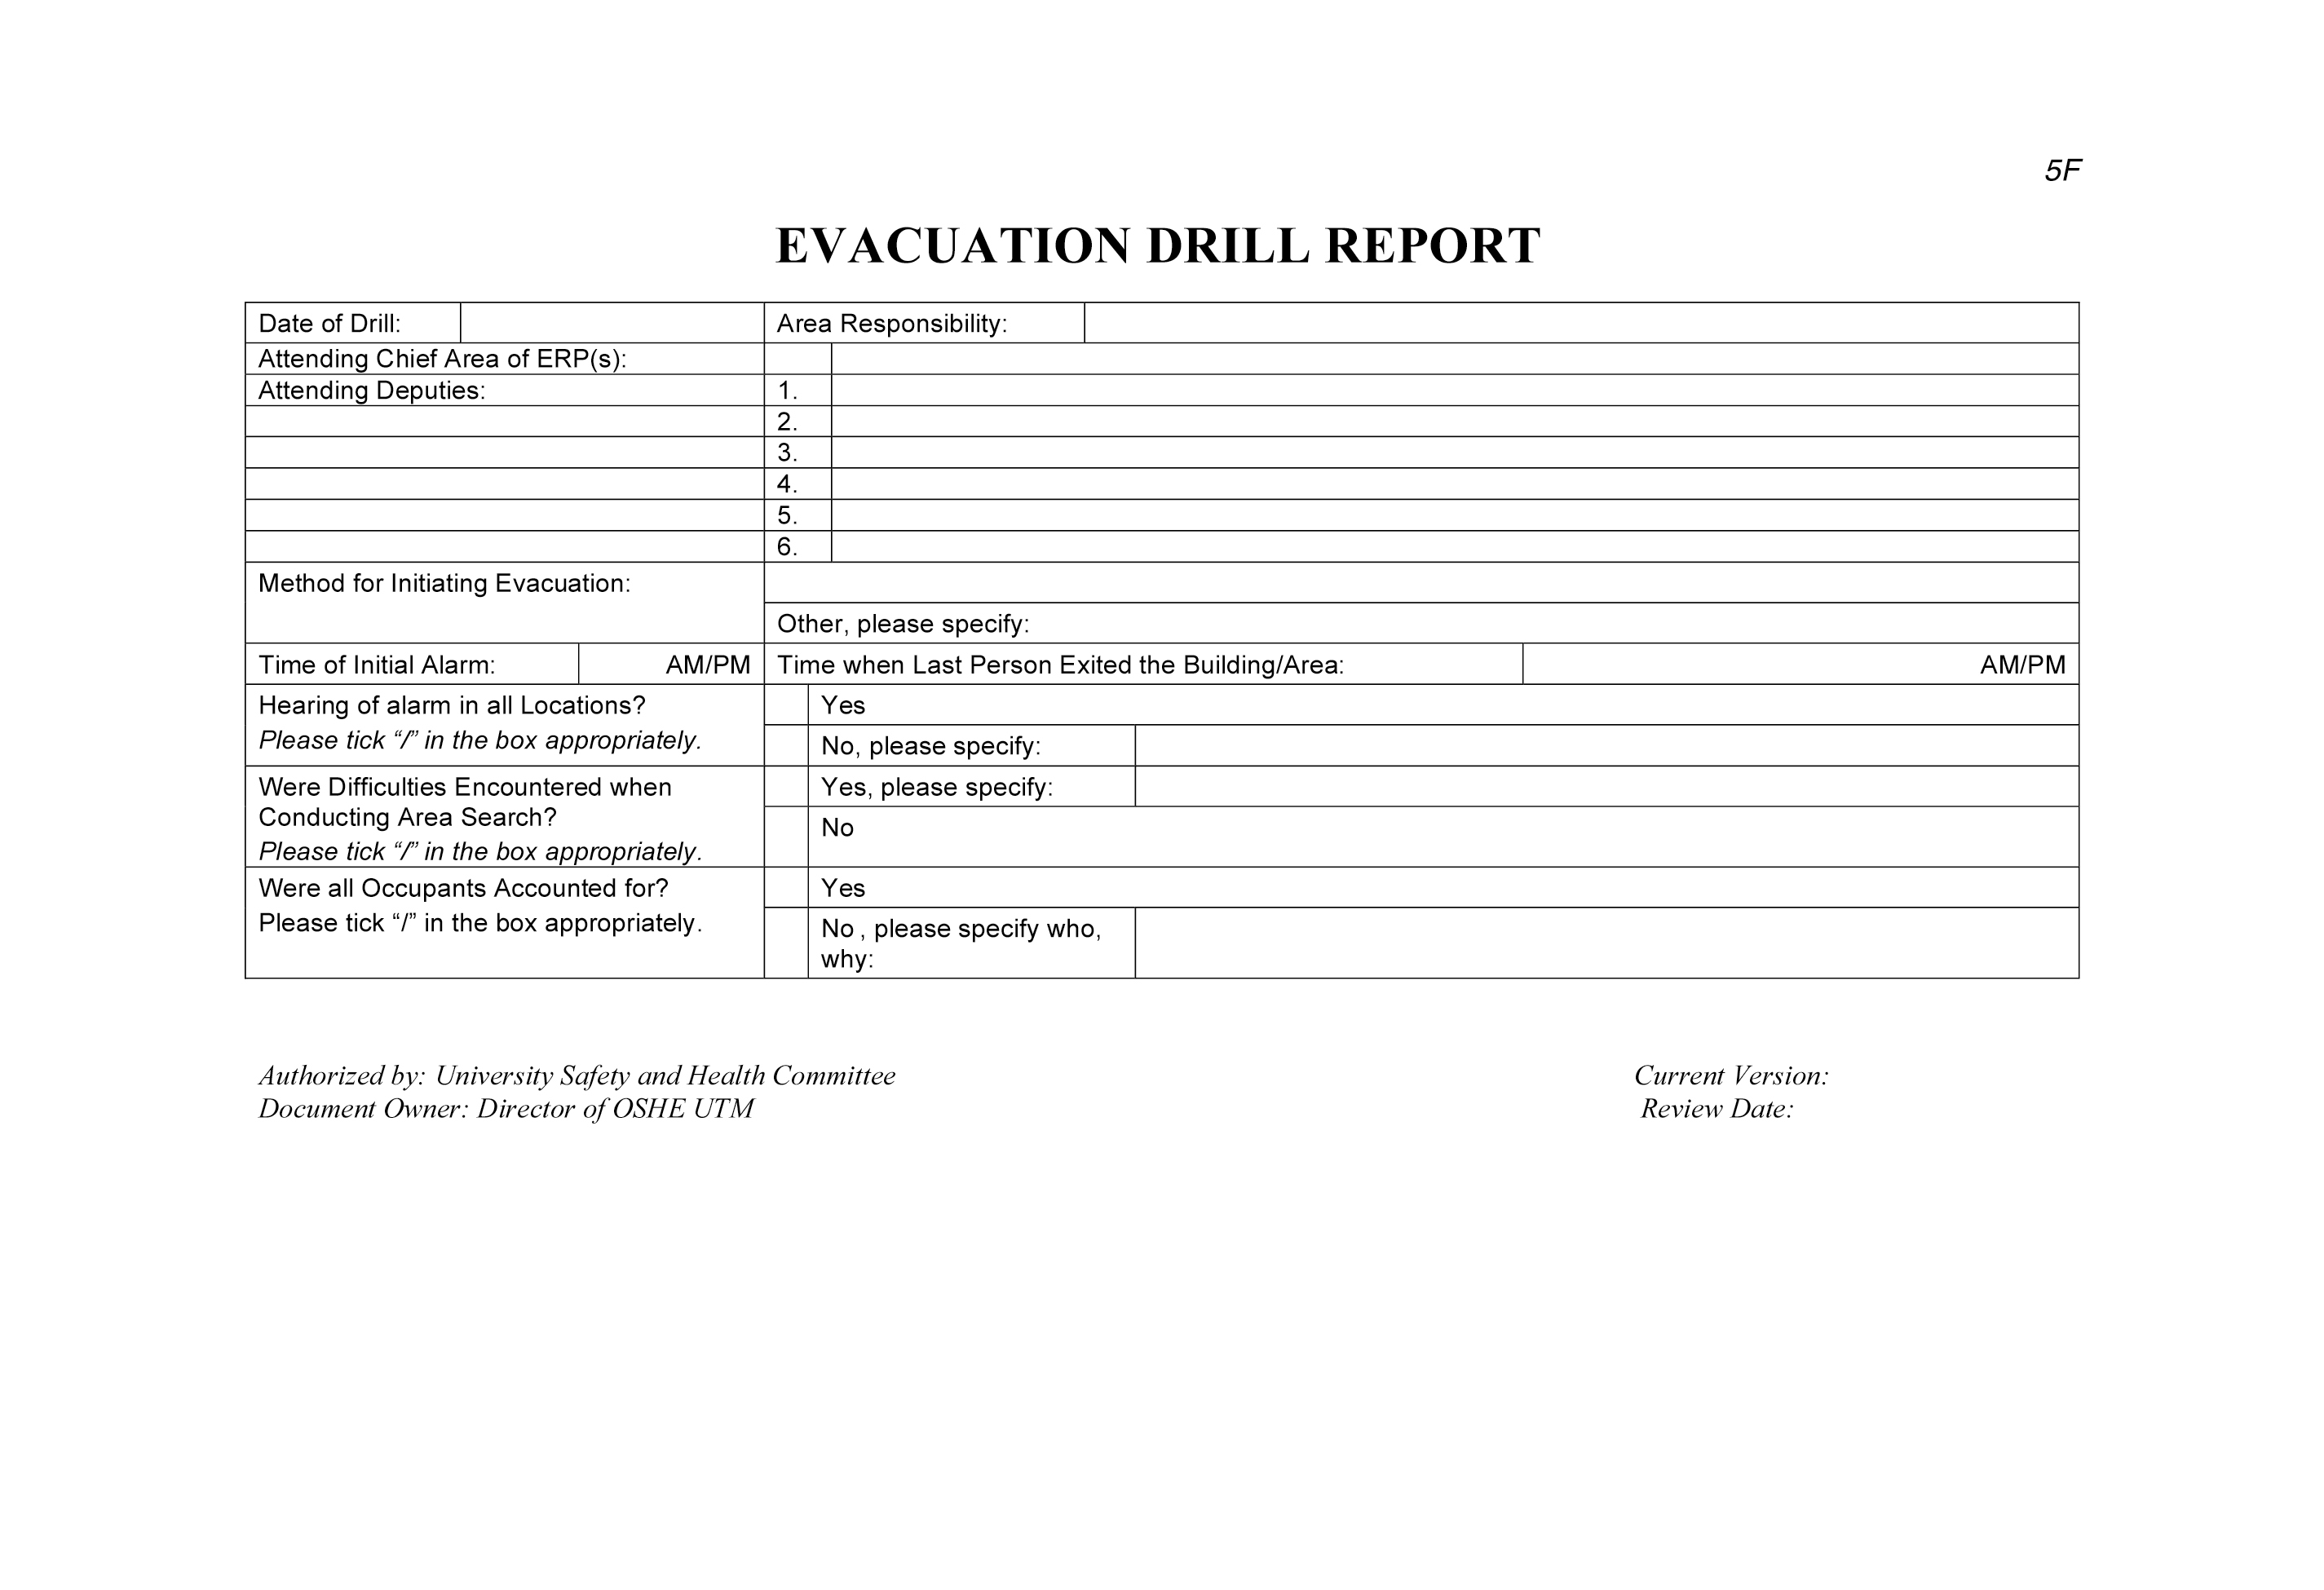 EVACUATION DRILL REPORT | OCCUPATIONAL SAFETY, HEALTH AND ...